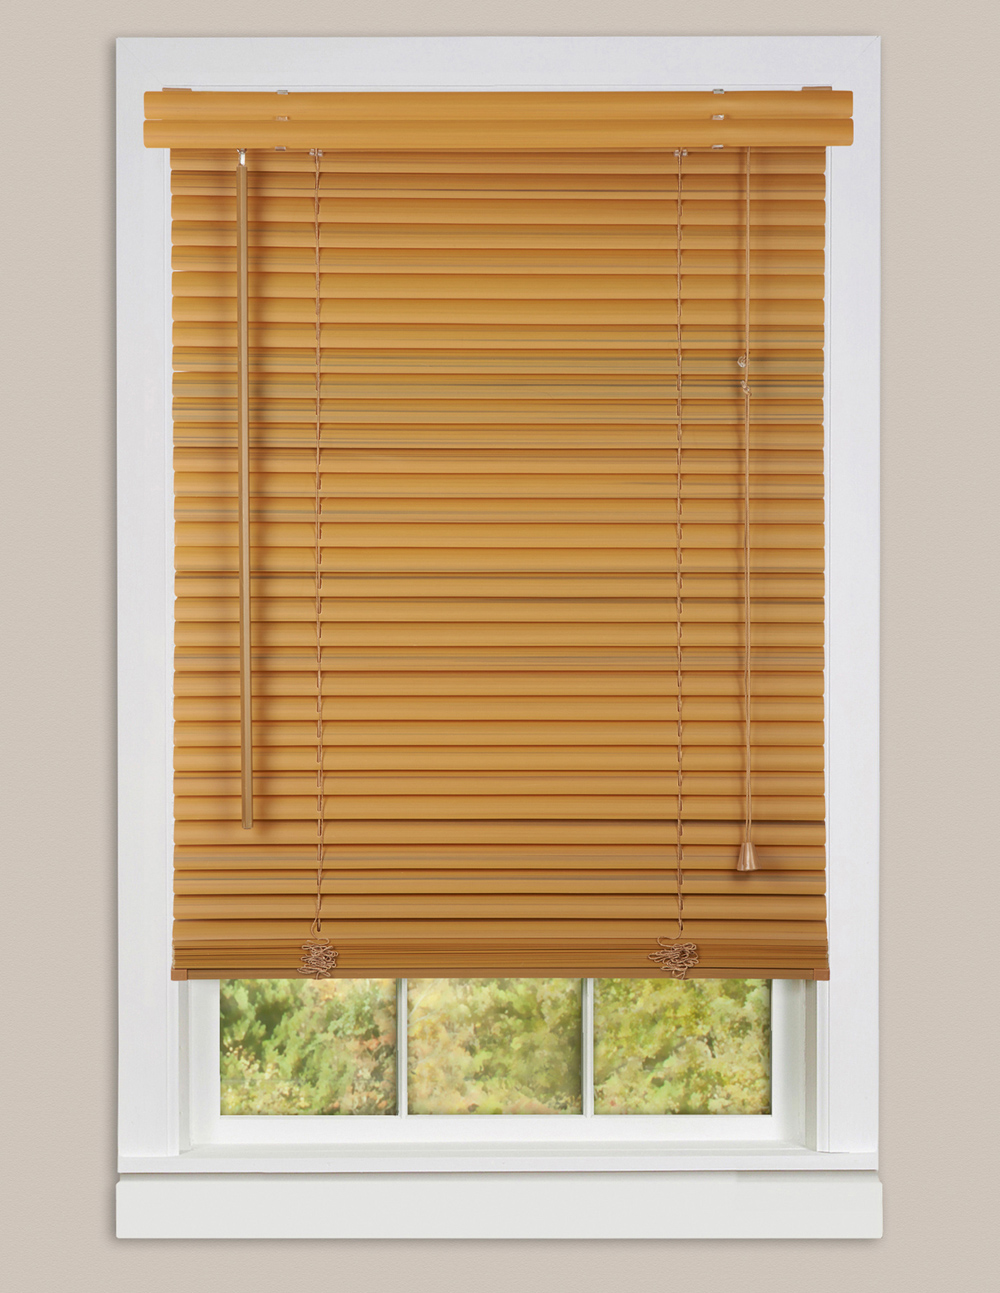 Black Window Blinds : Window blinds mini blind quot slat vinyl venetian